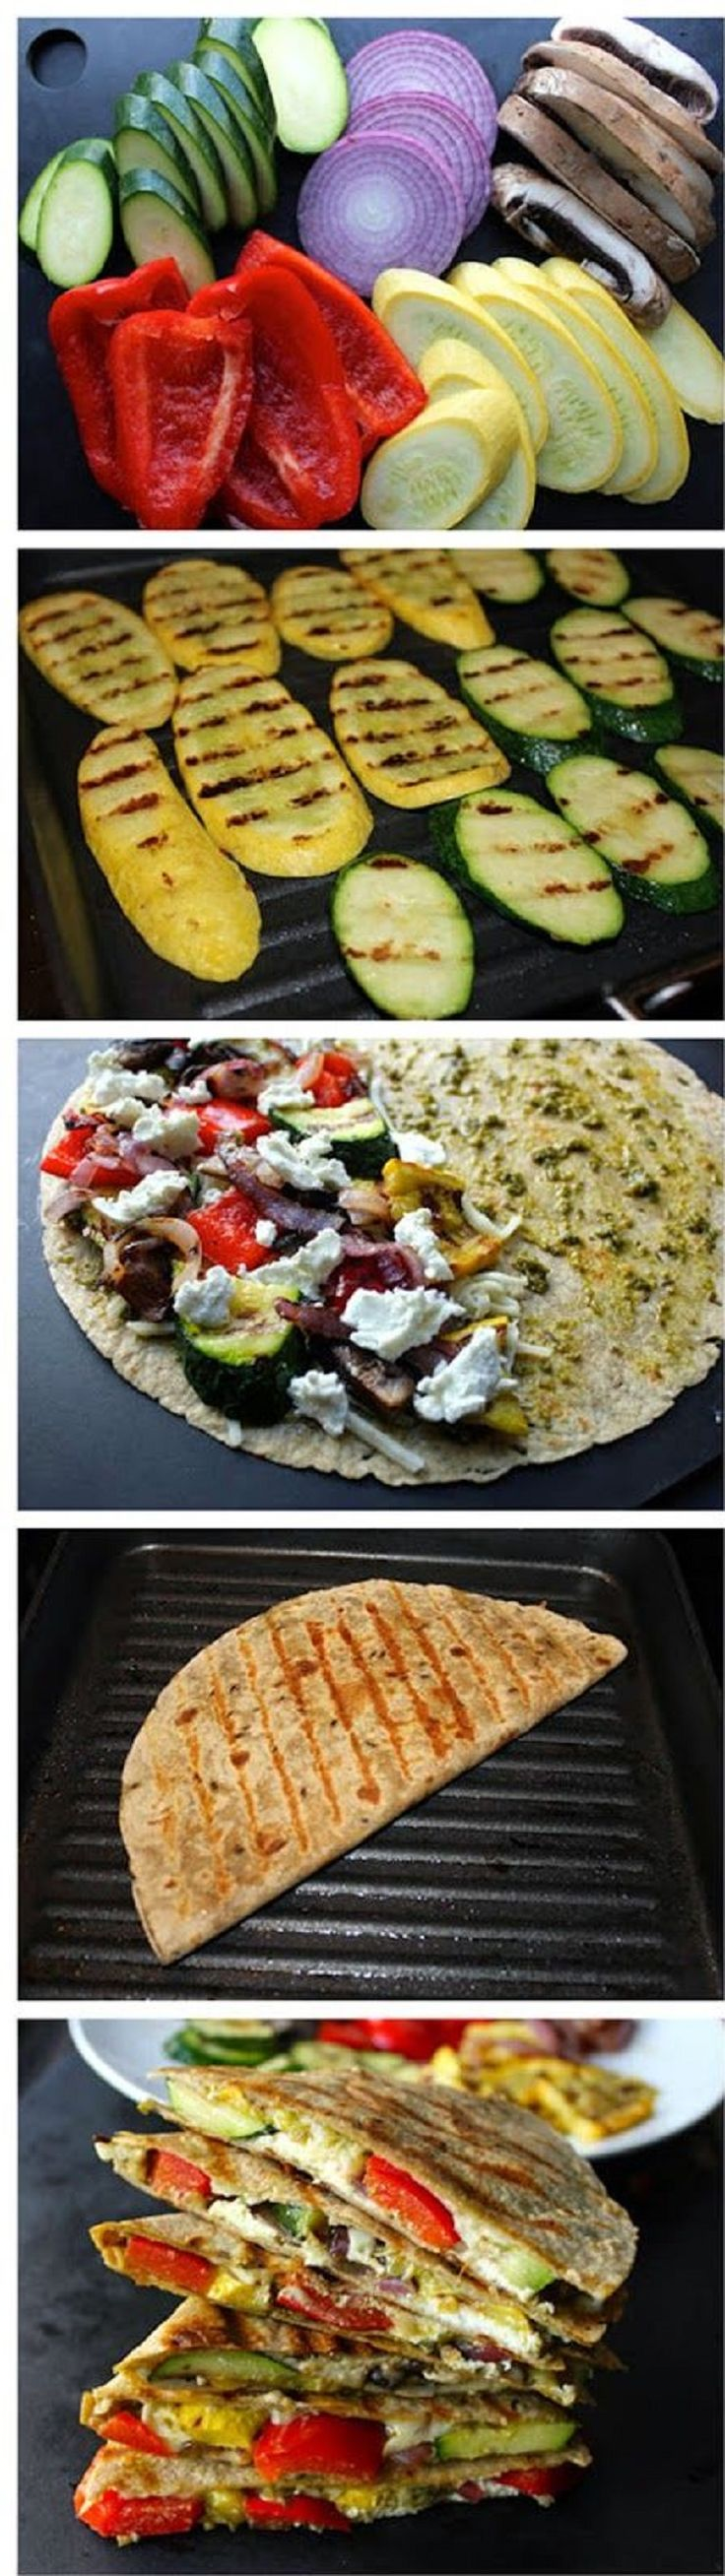 Grilled Veggie & Pesto Quesadillas